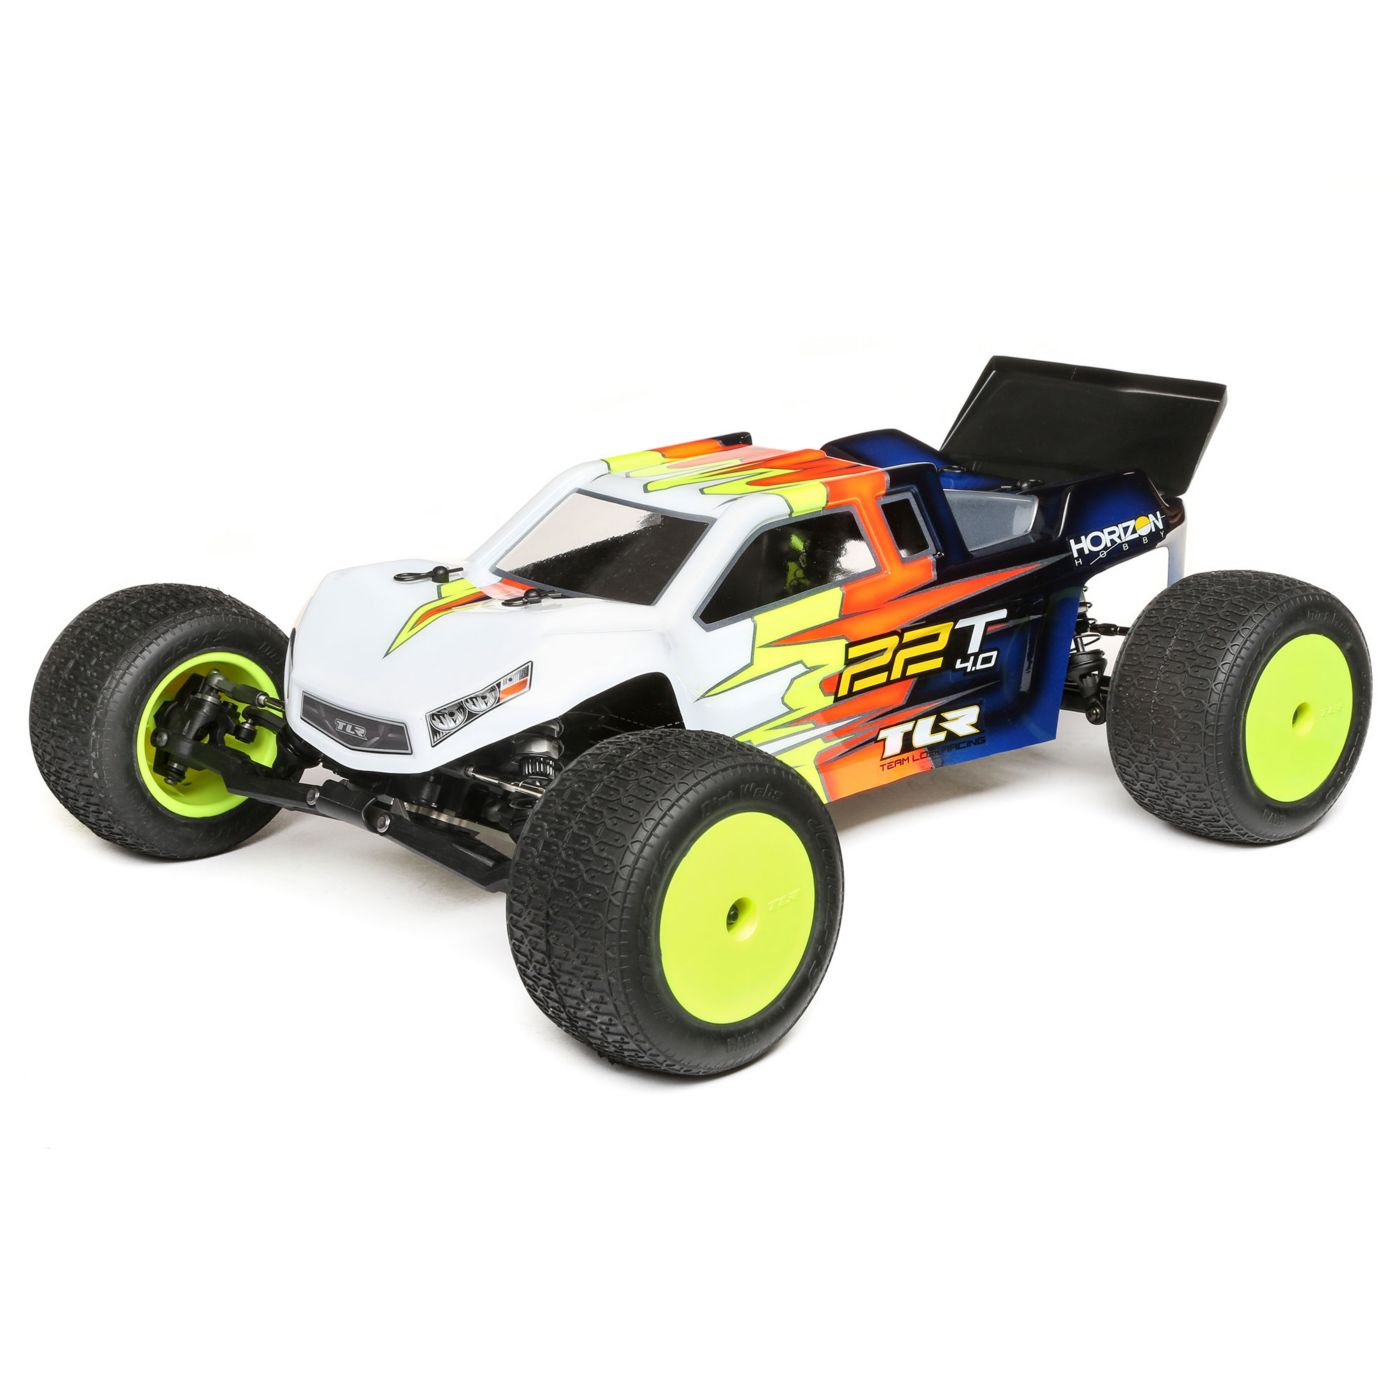 Evolution of Speed: Team Losi Racing's 22T 4.0 Stadium Race Truck Kit